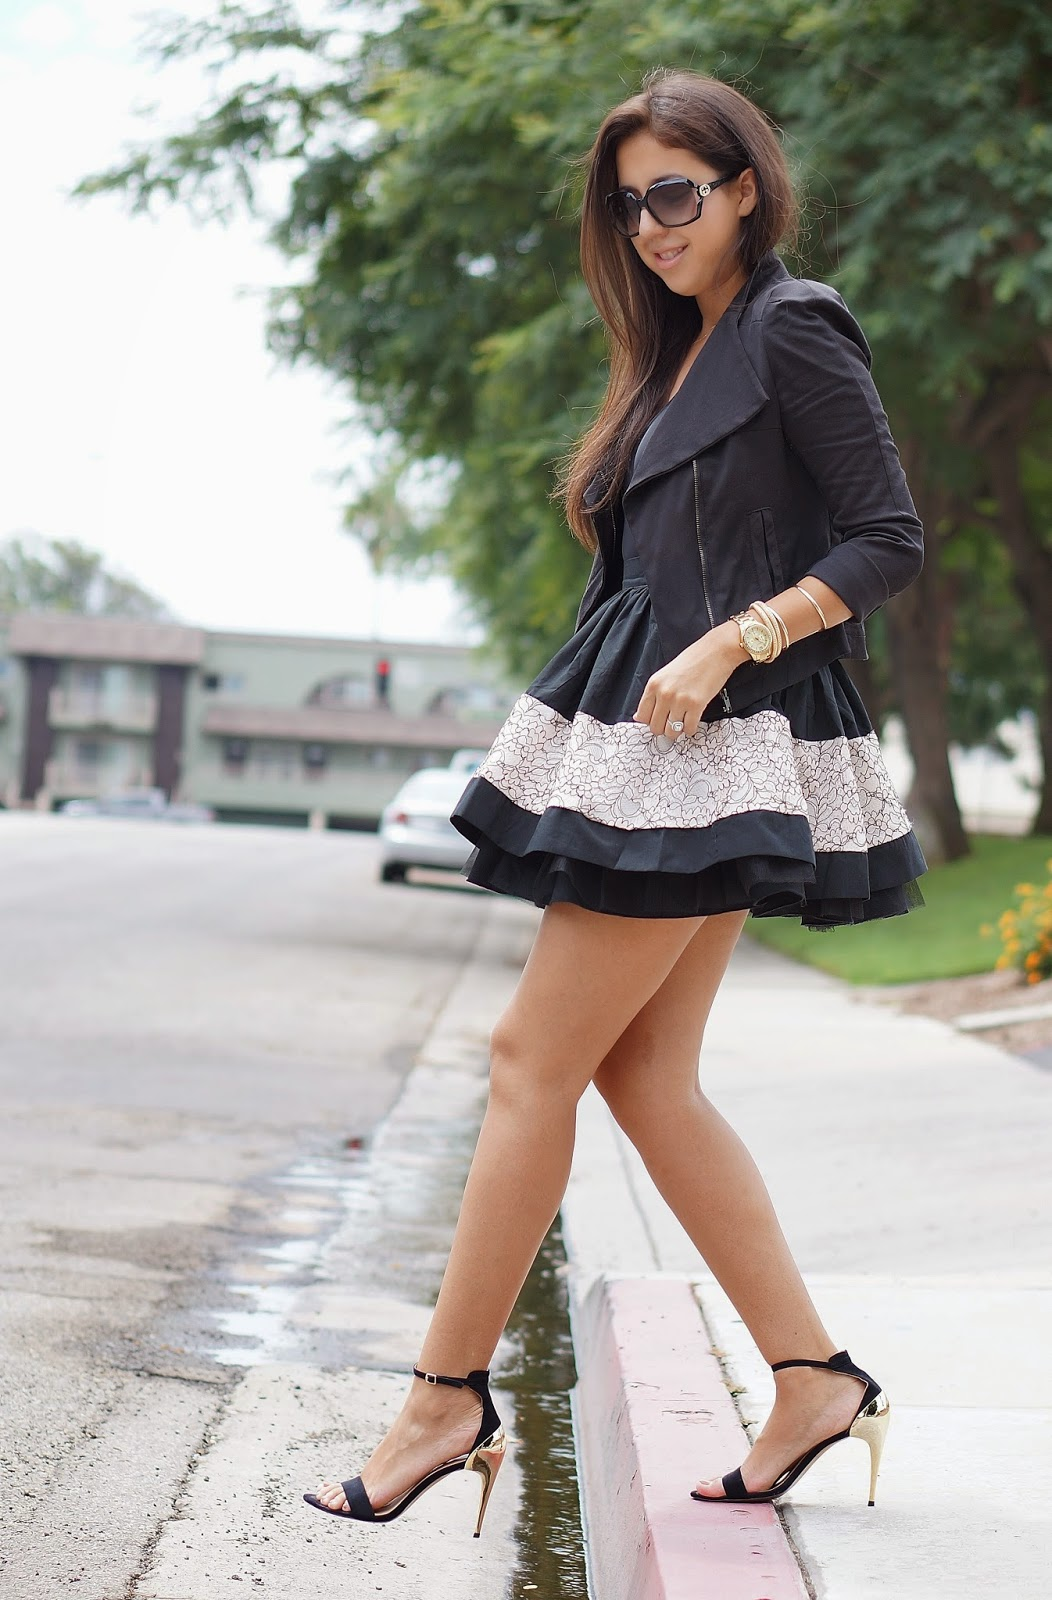 Windsor Skater Skirt, Zara heels, Gucci Sunglasses